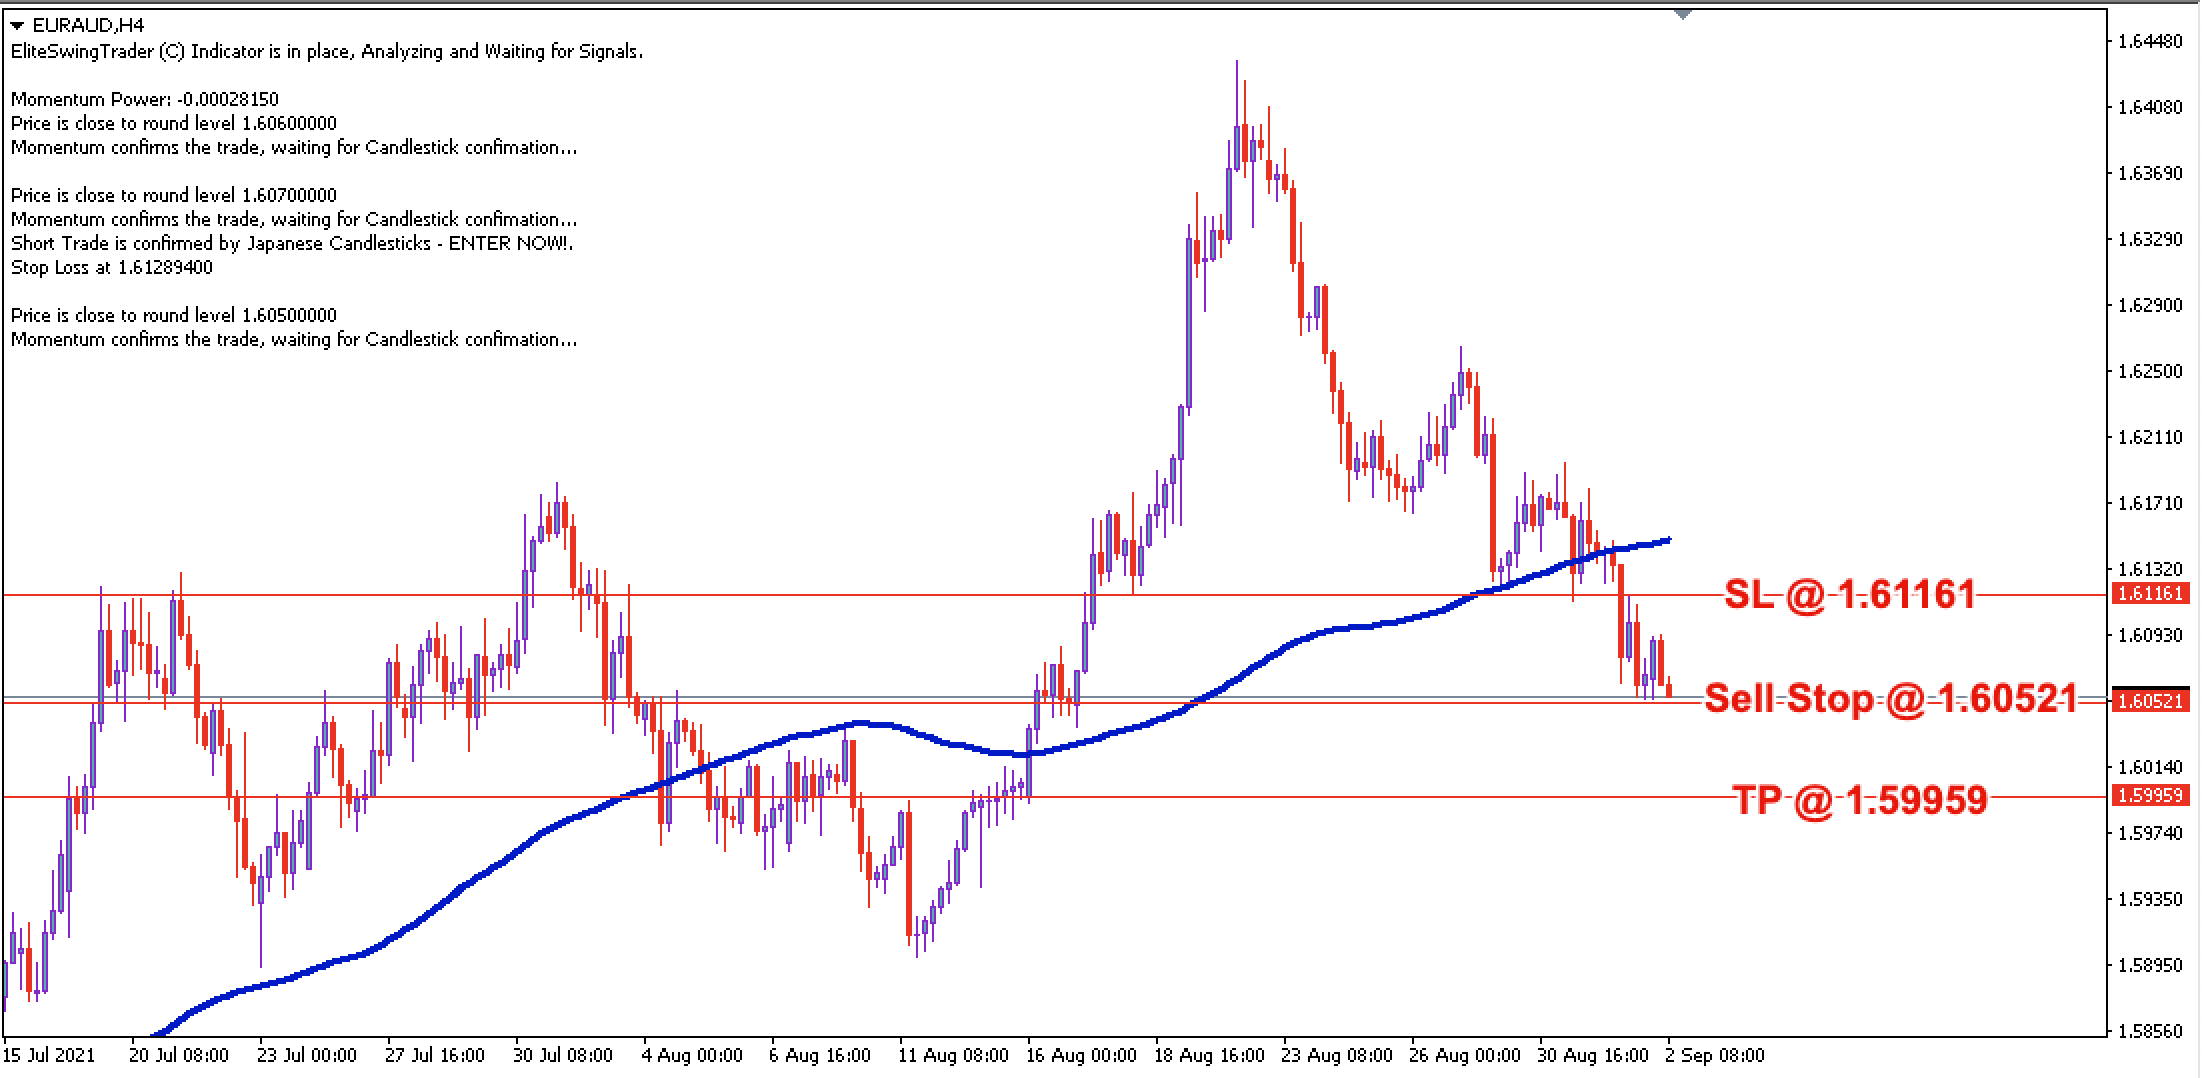 EUR/AUD Daily Price Forecast – 2nd Sept 2021